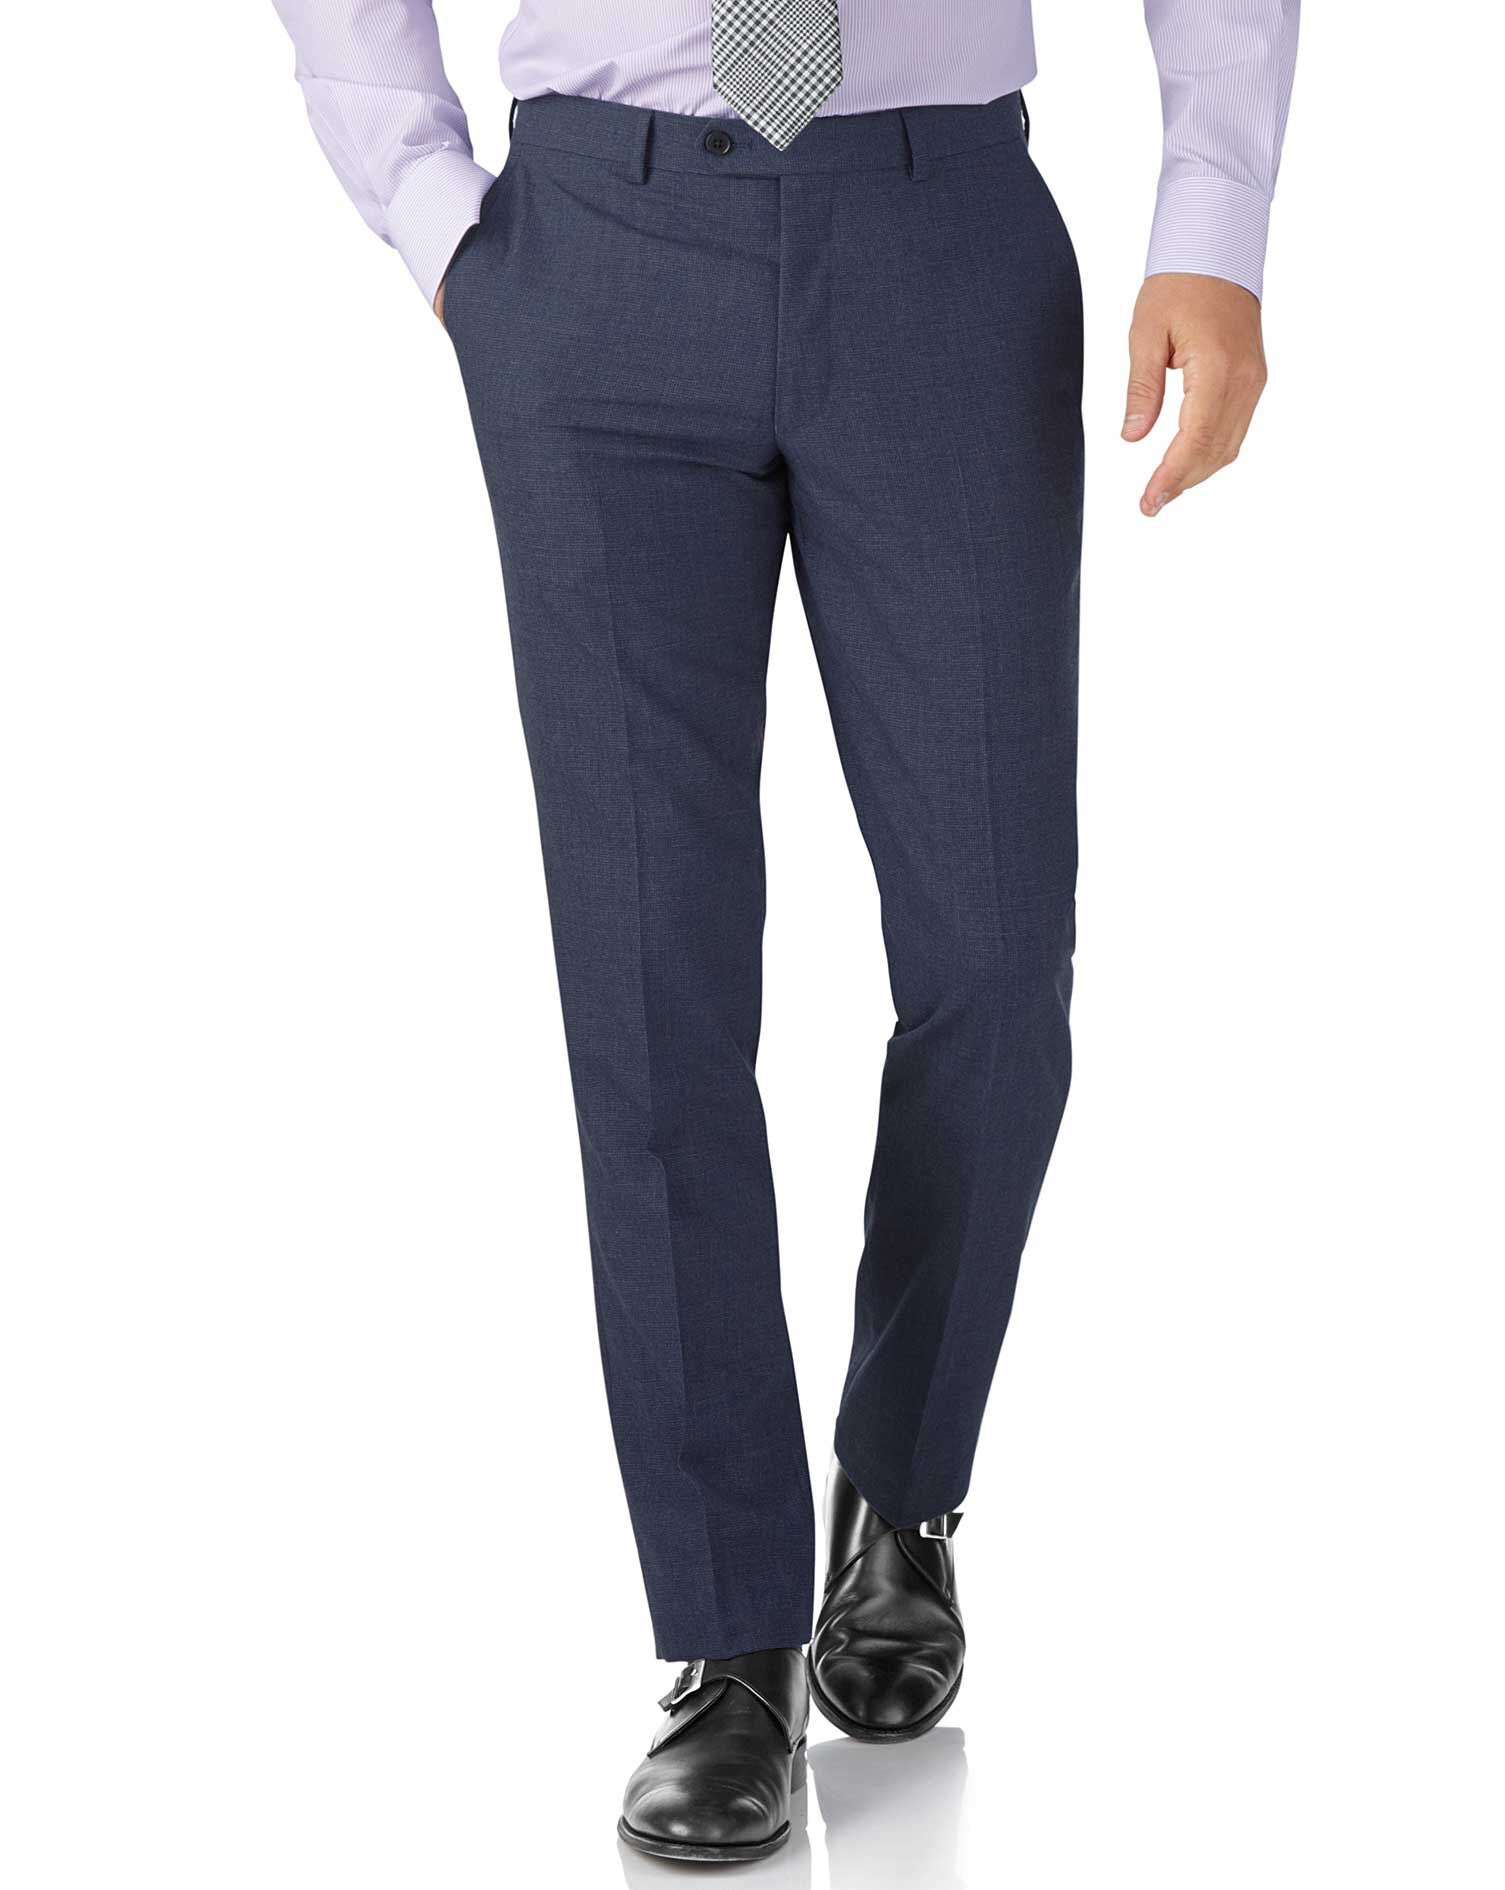 Airforce Blue Puppytooth Slim Fit Panama Business Suit Trouser Size W42 L38 by Charles Tyrwhitt